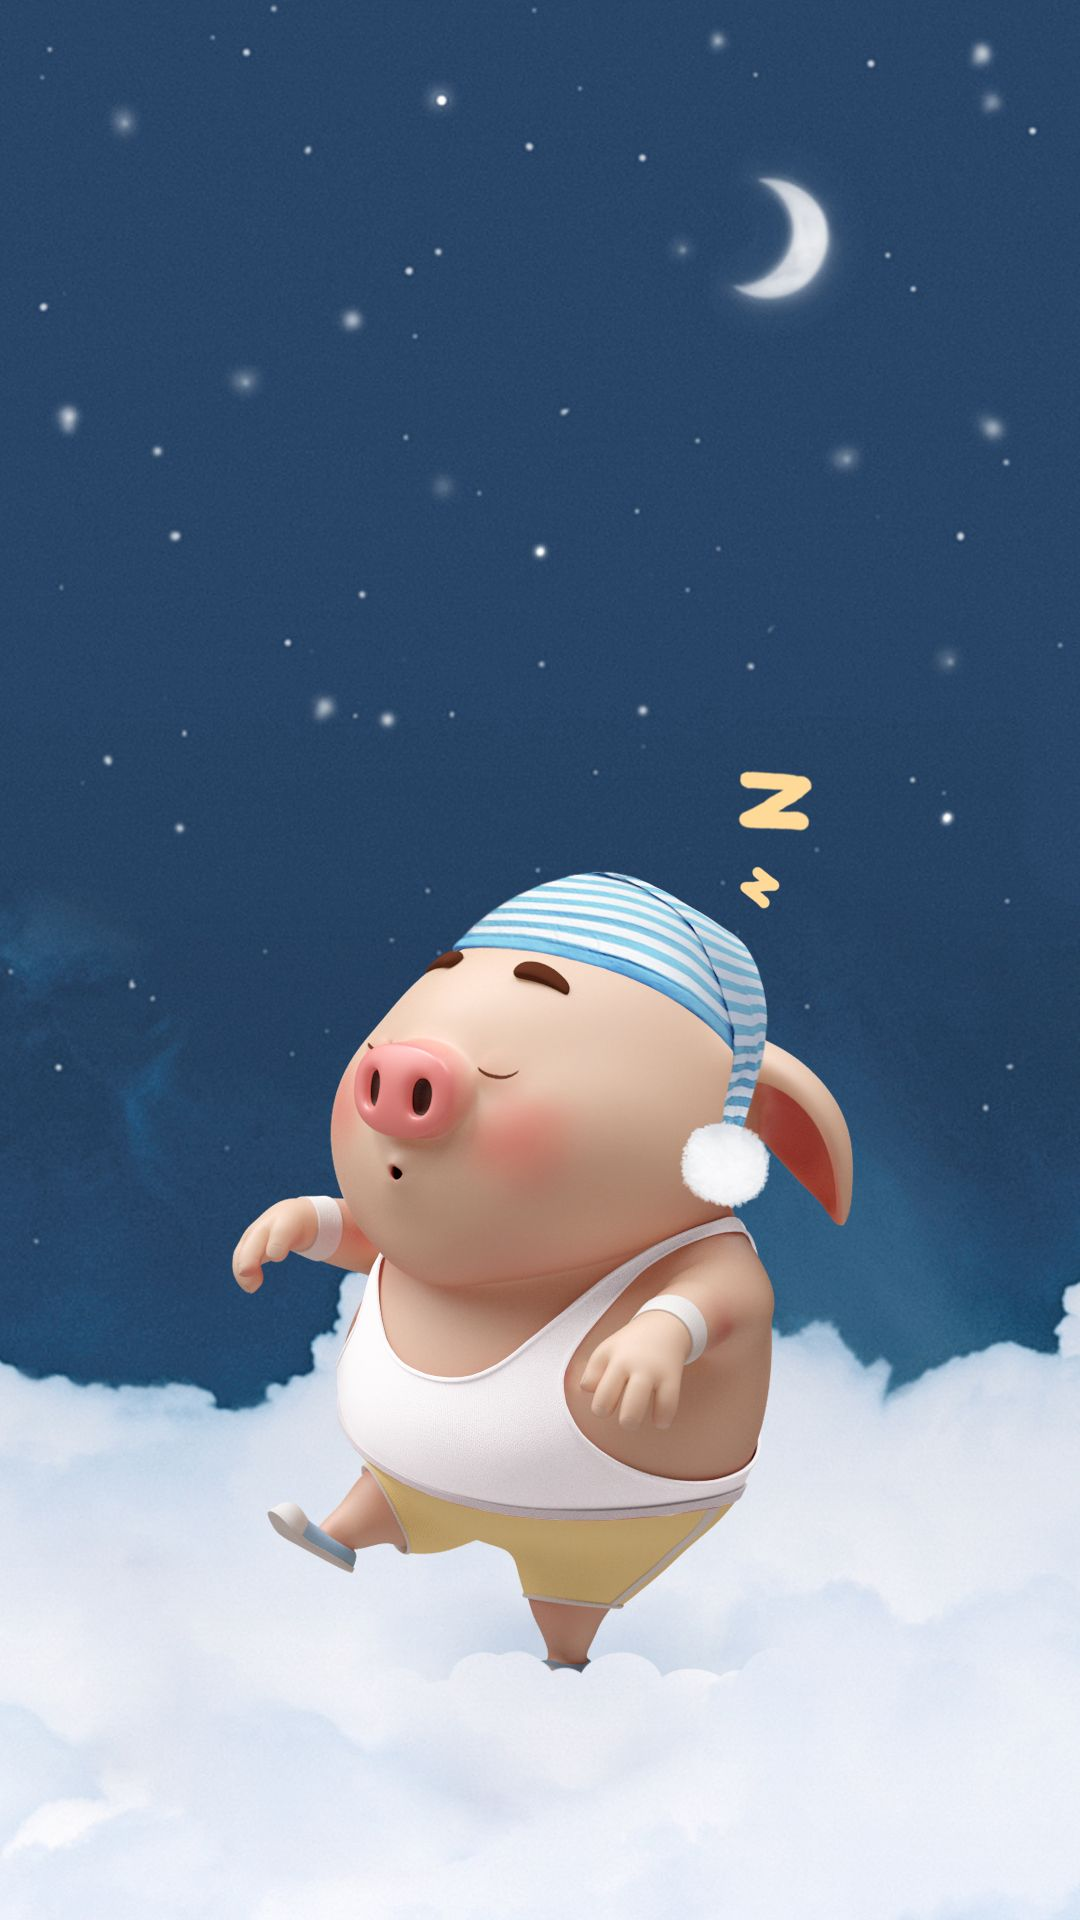 Pin By Tata On Pigs In 2019 Pig Wallpaper Cute Pigs Pig